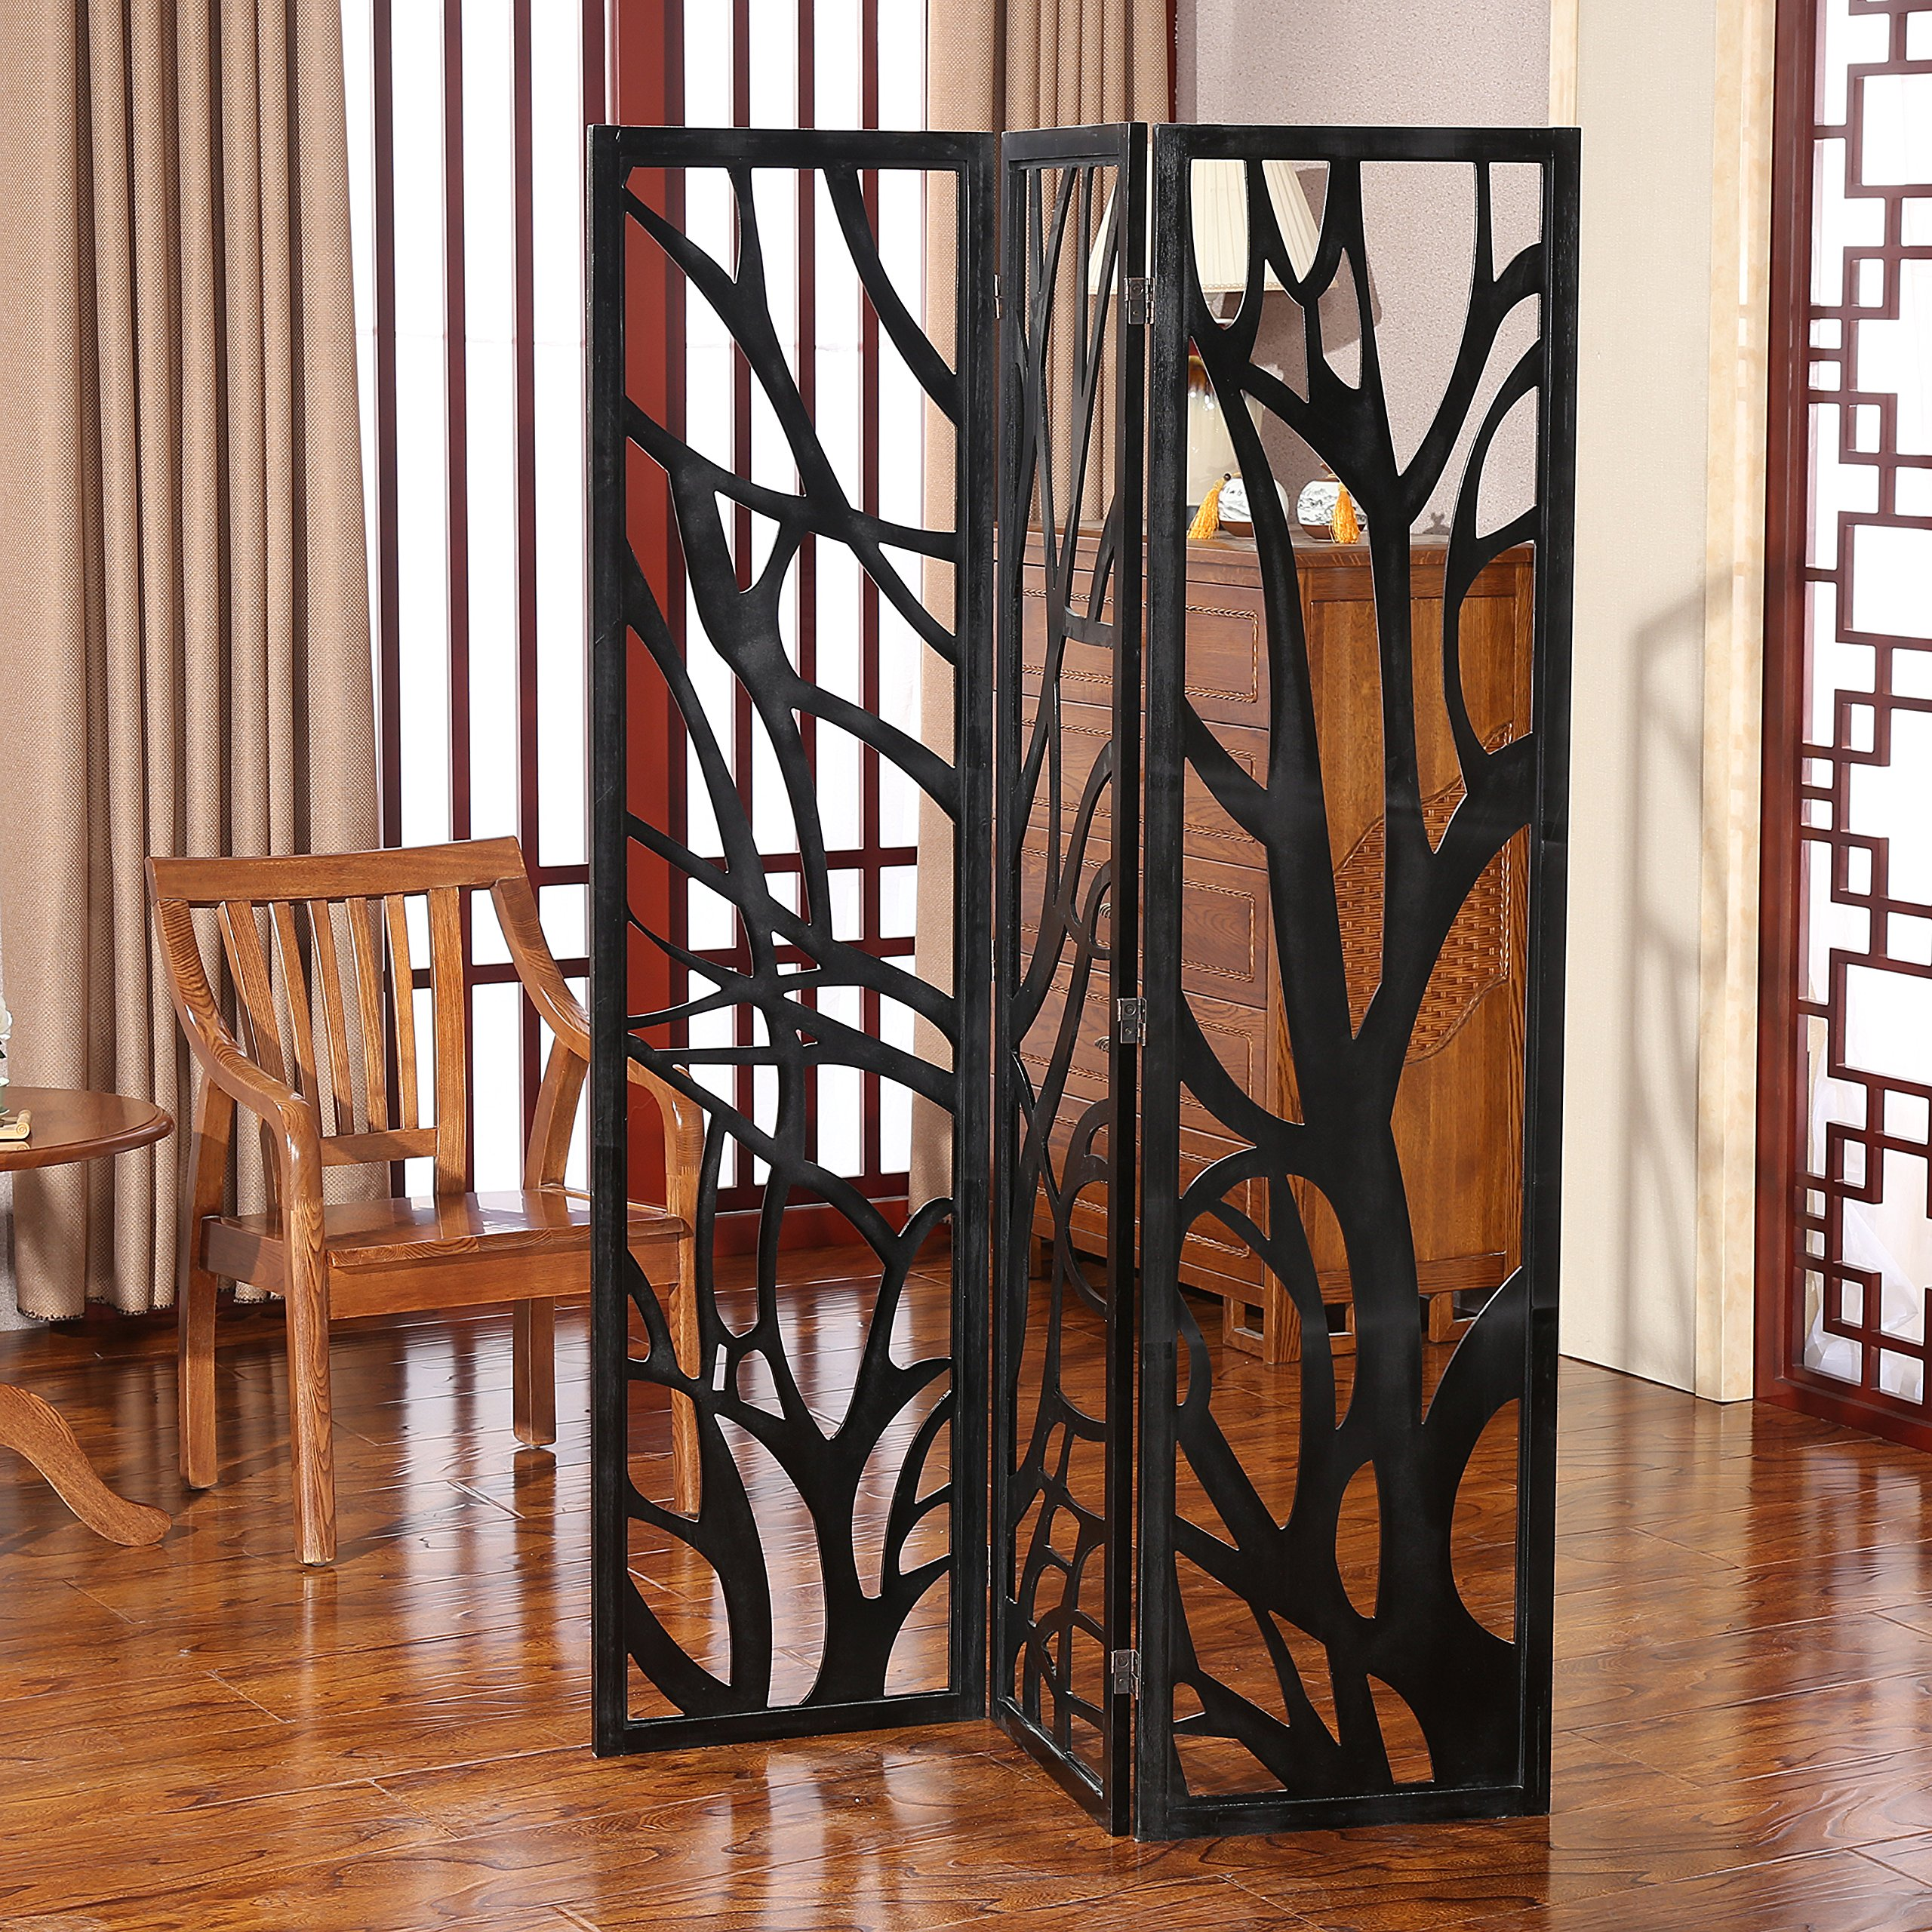 dividers pertaining wooden divider room decorative to decor cloth remodel screen idea